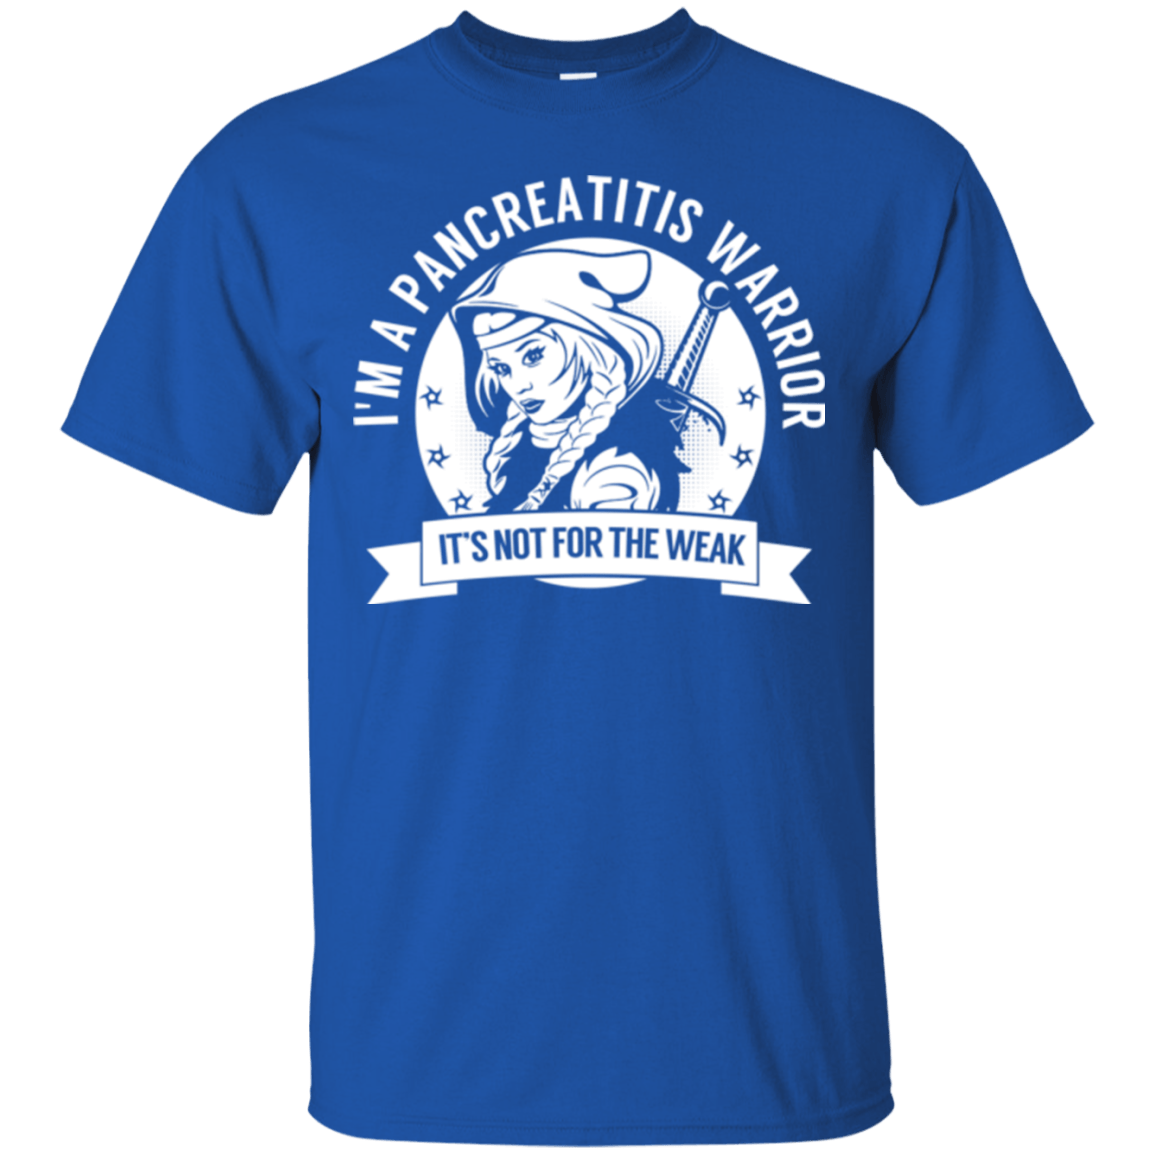 Pancreatitis Warrior Hooded Cotton T-Shirt - The Unchargeables